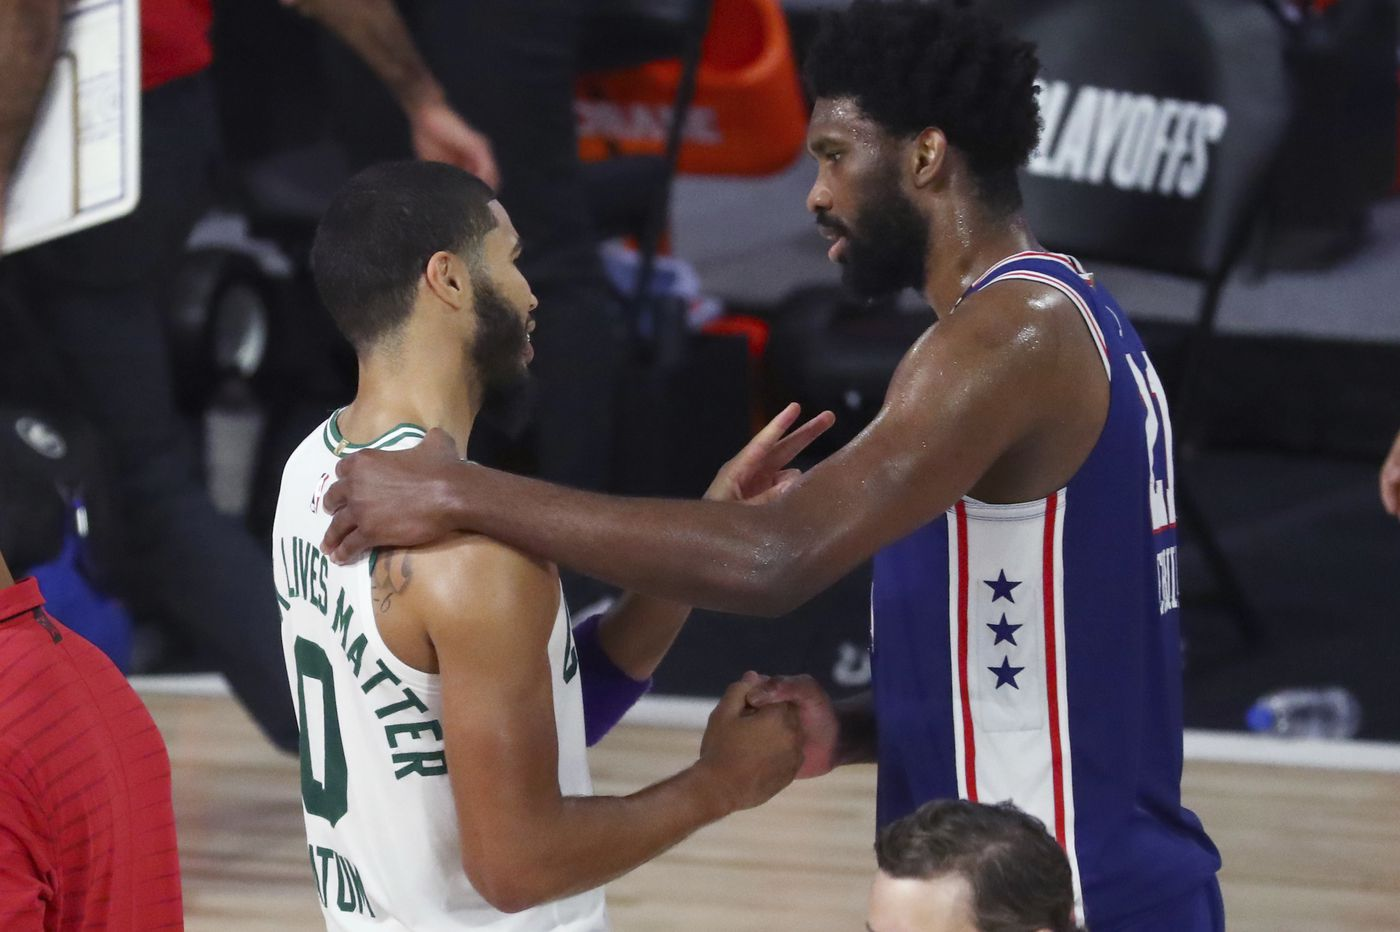 Joel Embiid: 'We got to do better. We got to look ourselves in the mirror'